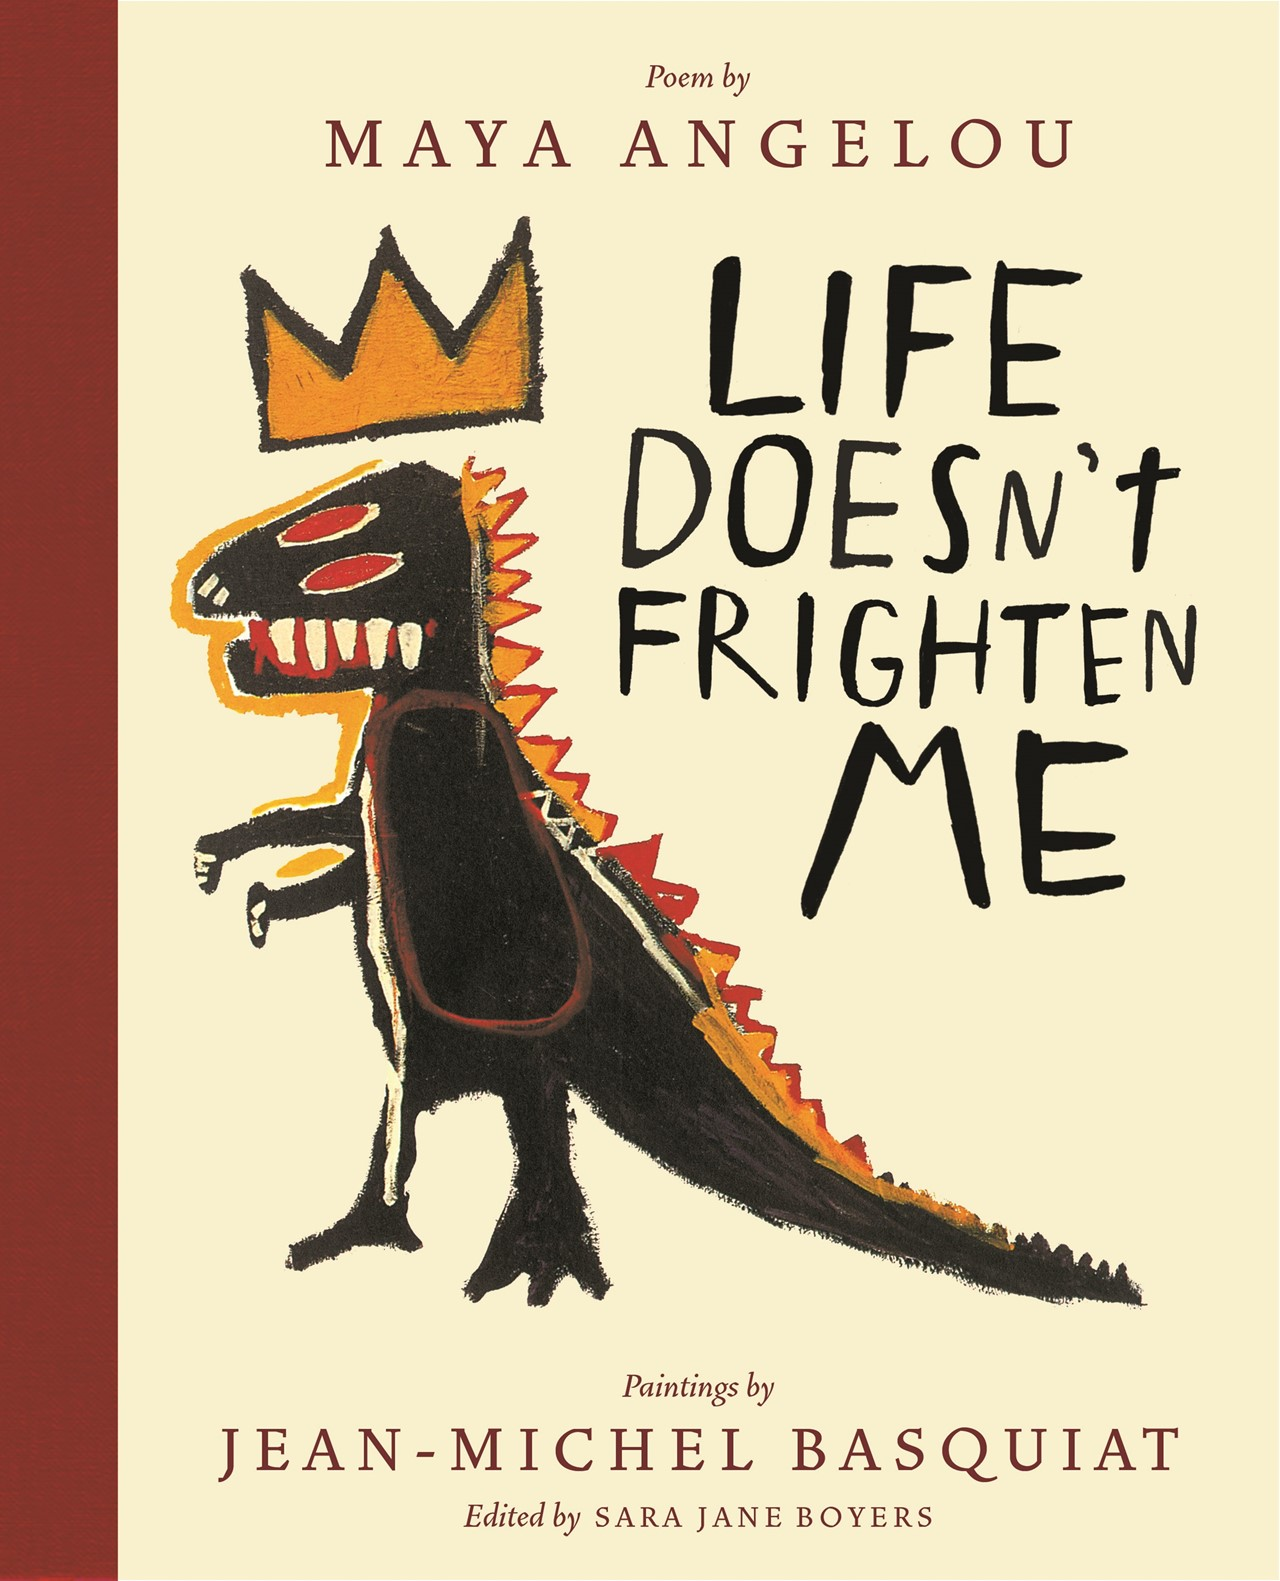 Life Doesn't Frighten Me by Maya Angelou & Jean-Michel Basquiat